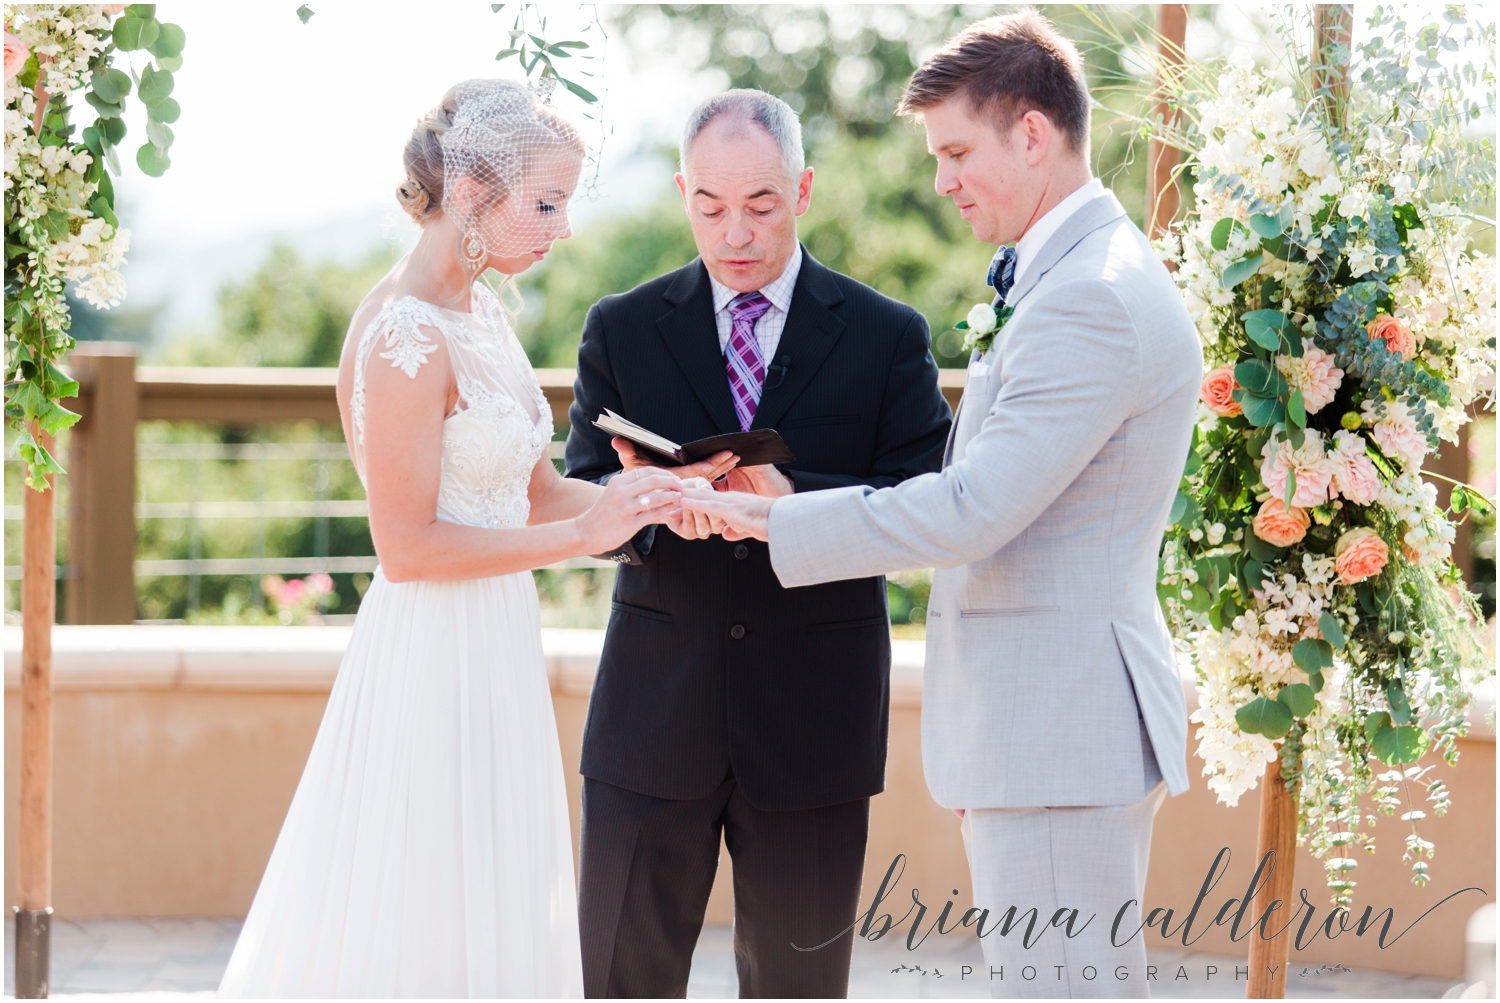 Regale Winery Wedding photos by Briana Calderon Photography_0671.jpg